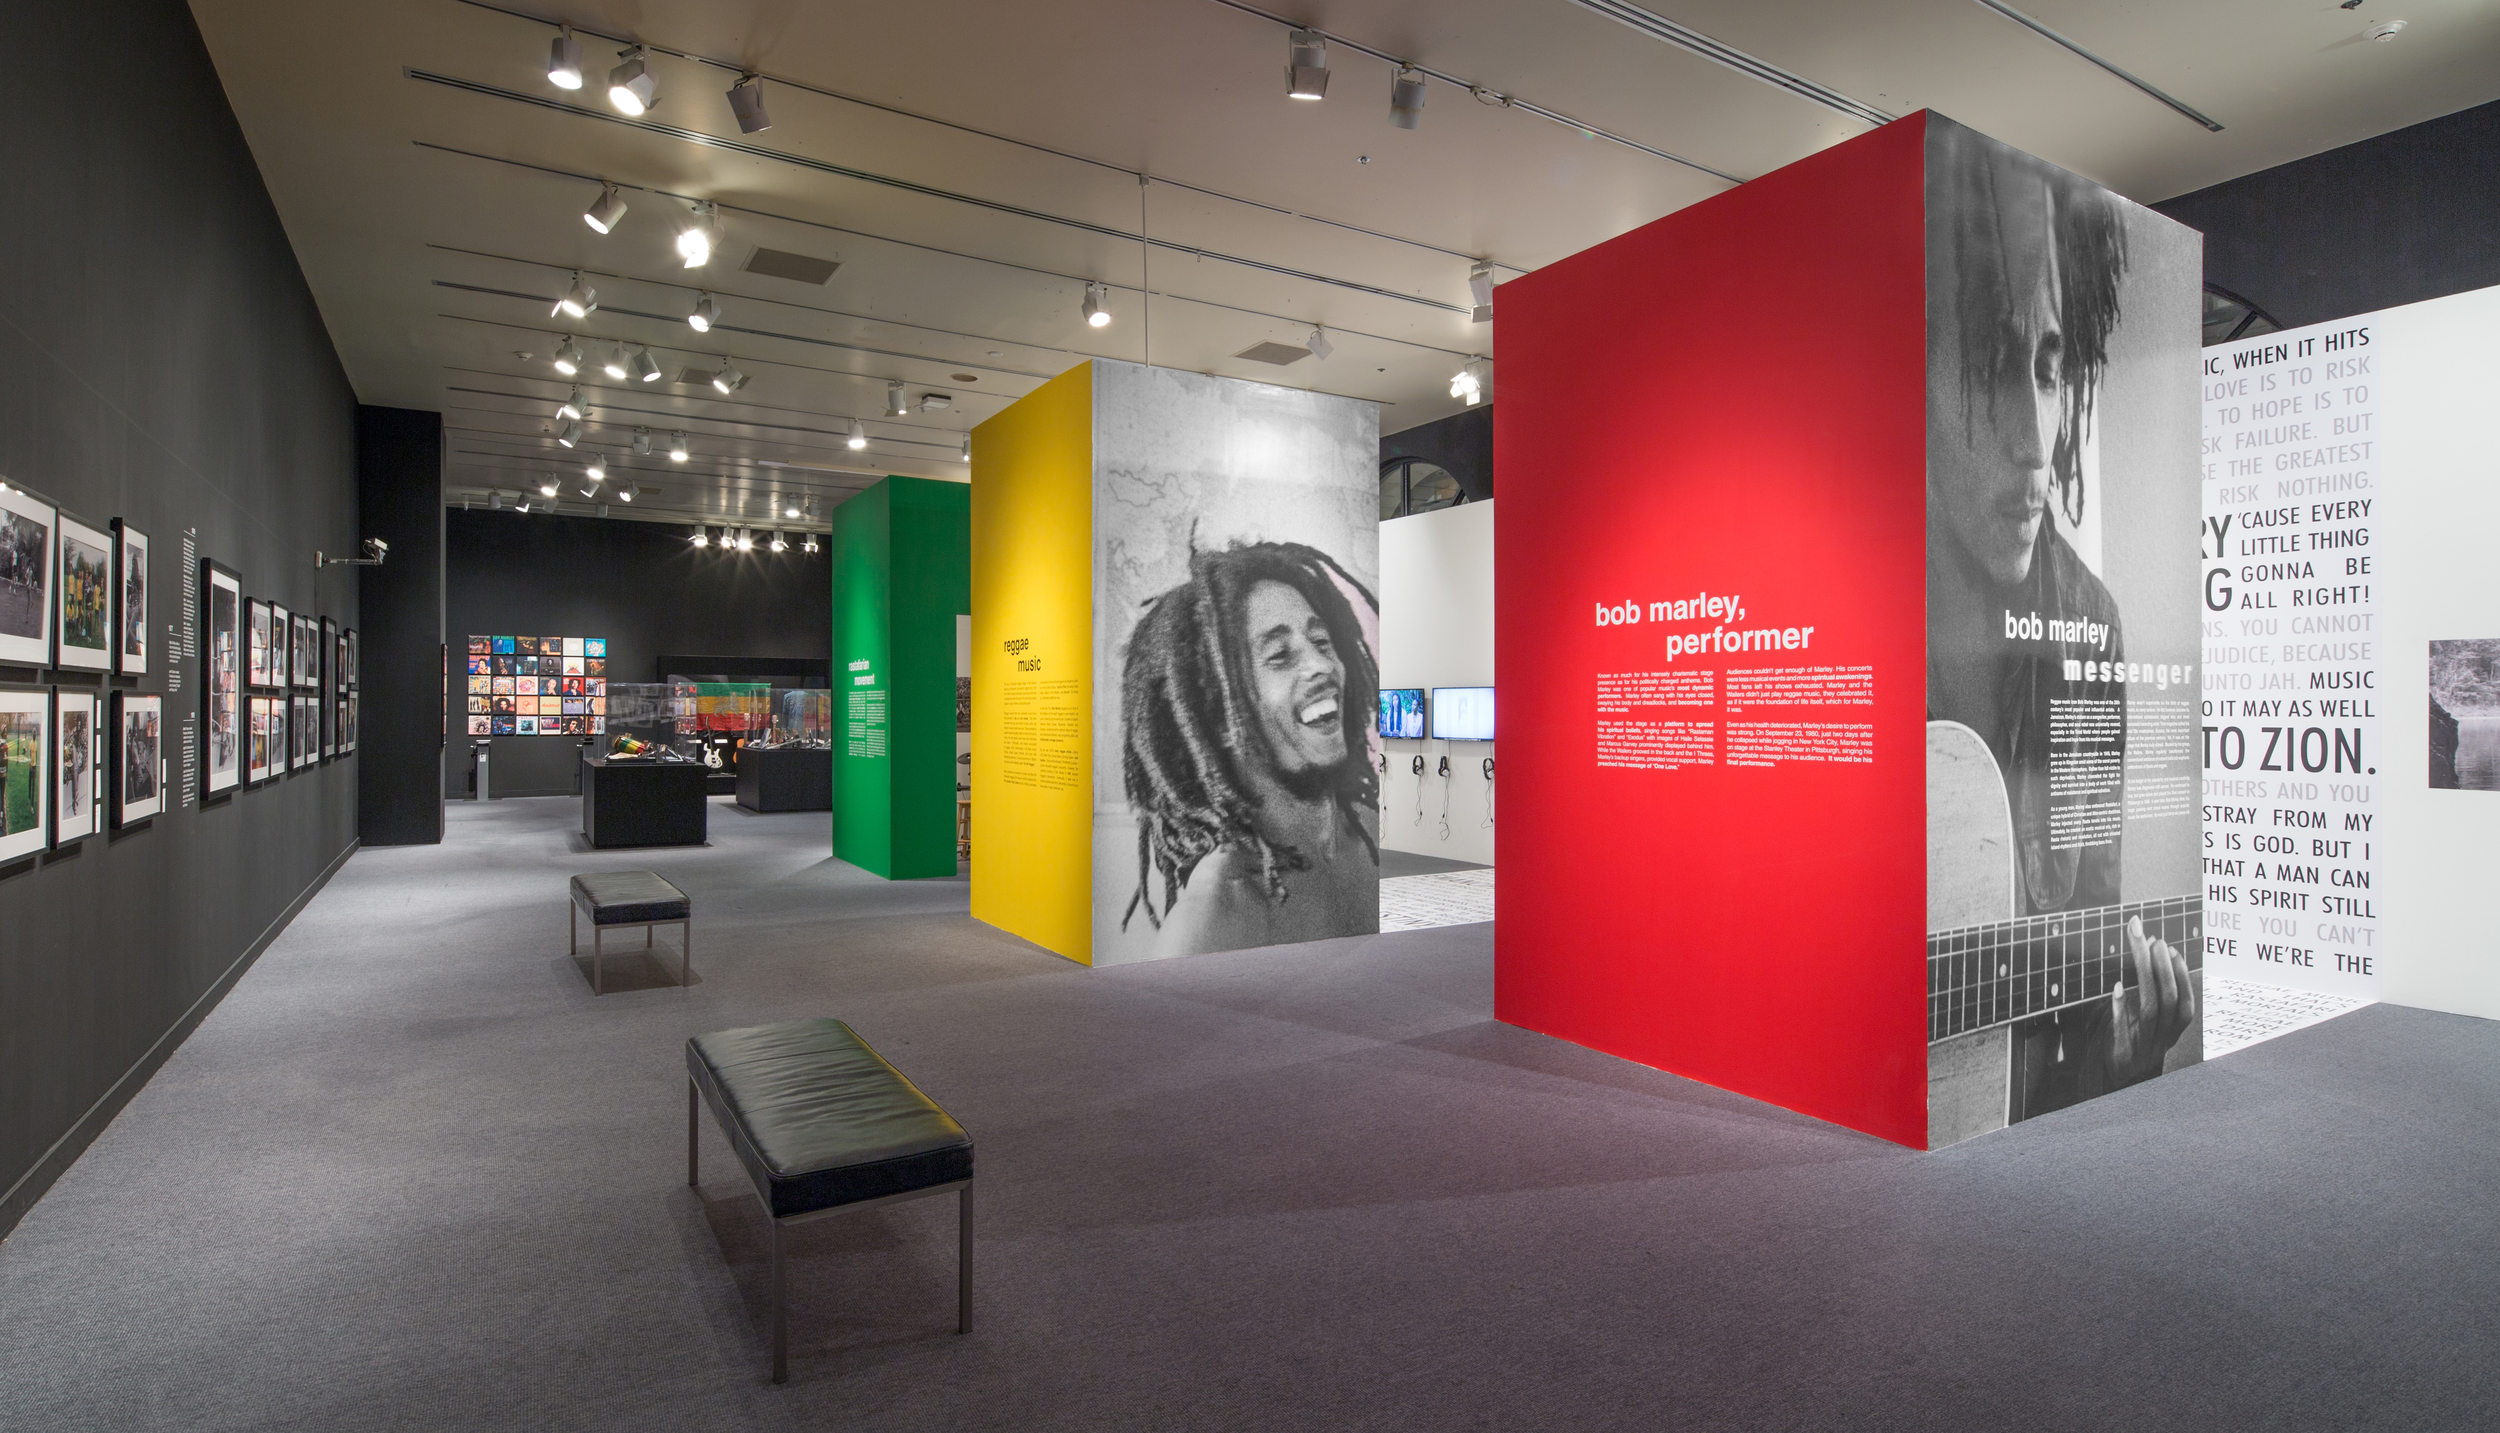 Bob Marley Exhibit at History Miami designed by Shulman + Associates photo by Robin Hill (c) HI RES (1).jpg